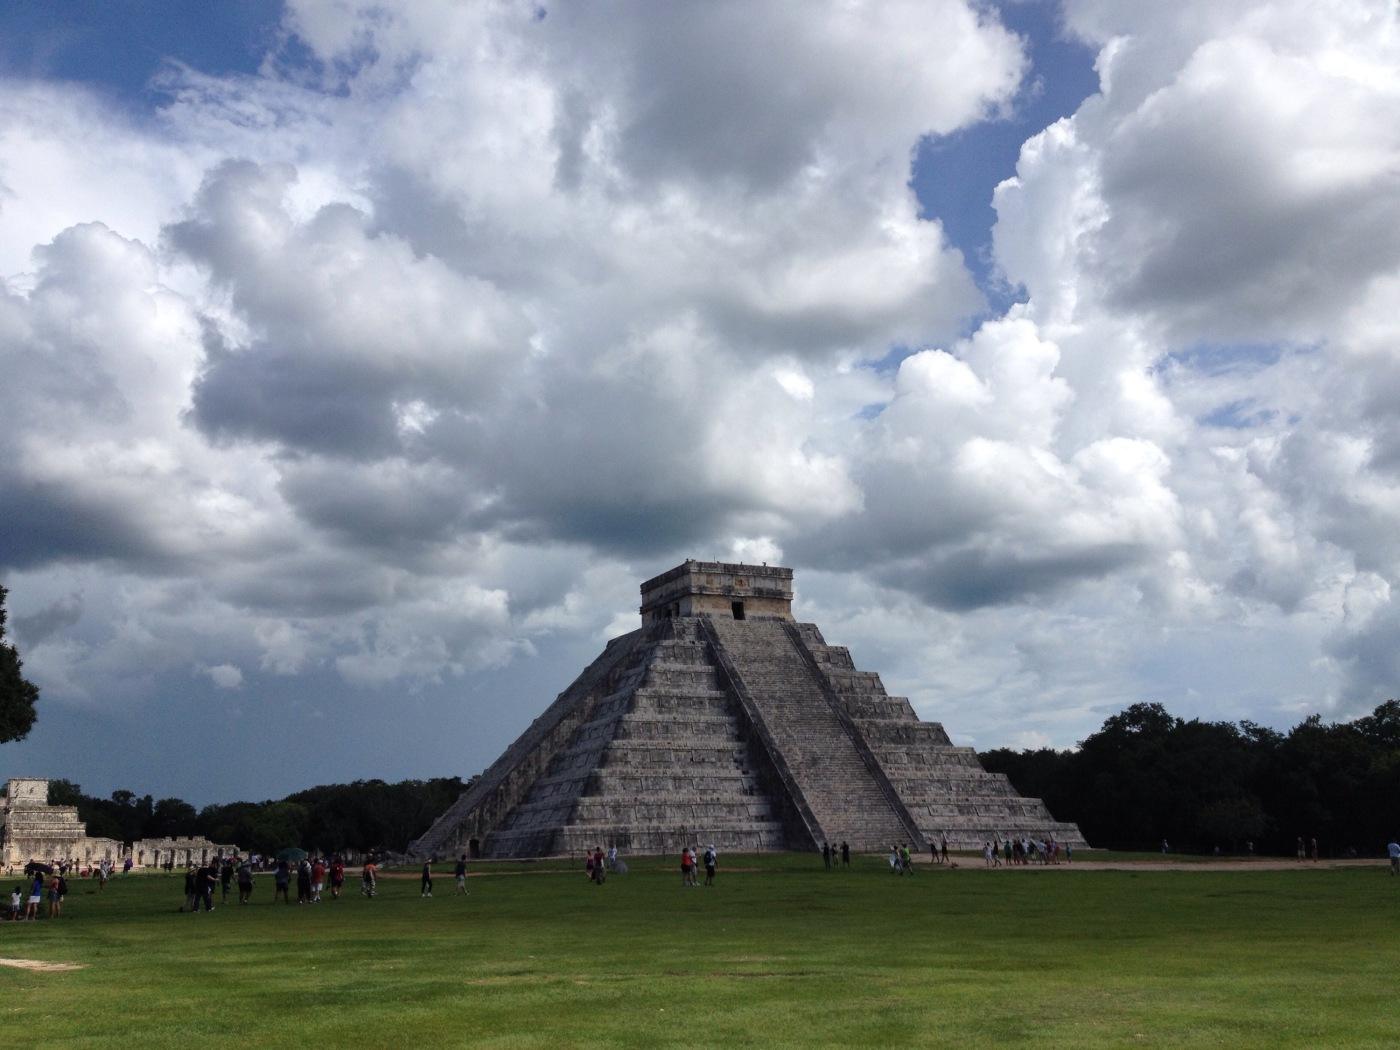 Oneof the most impressive mayan cities is Chichén Itzá.